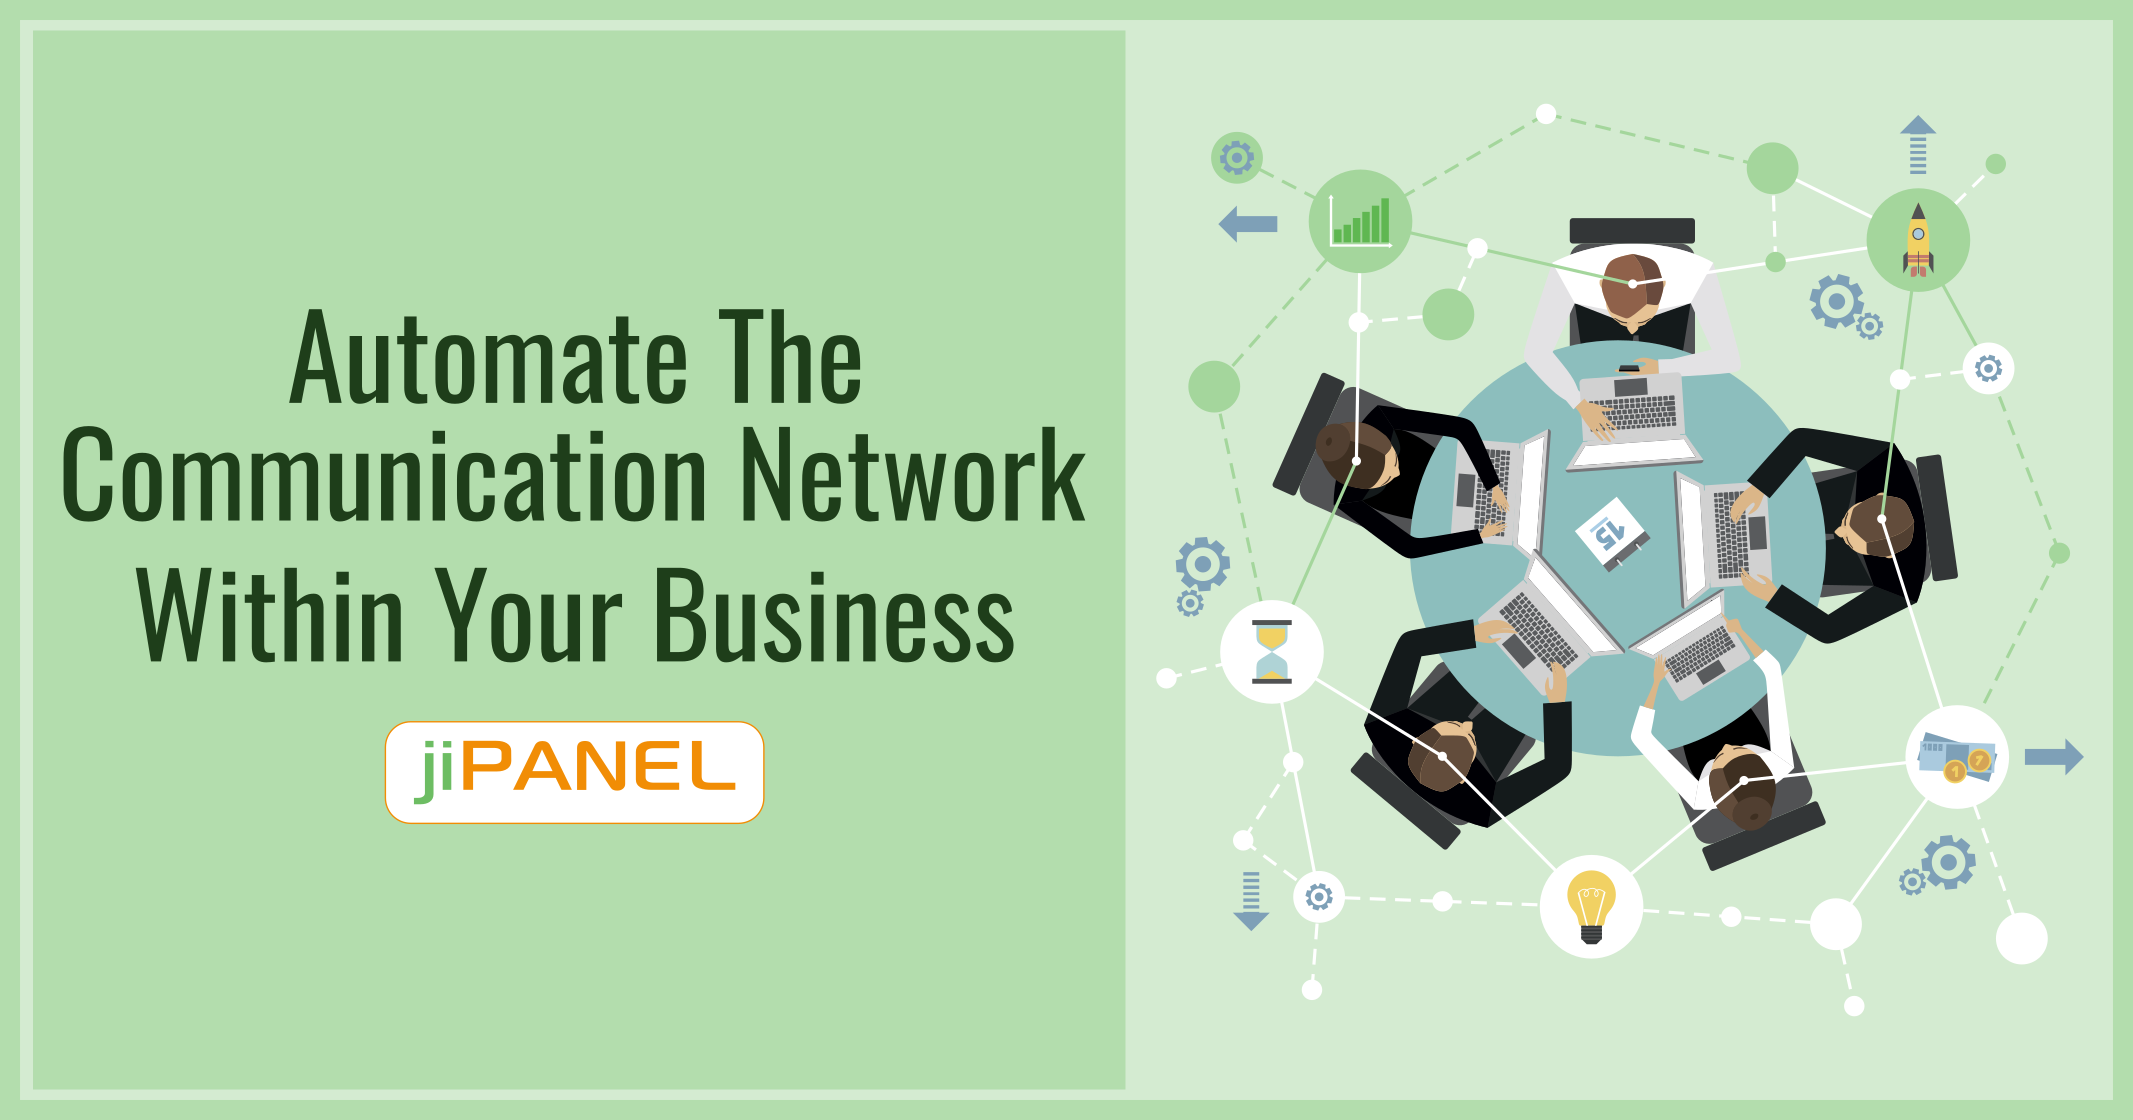 Automate The Communication Network Within Your Business